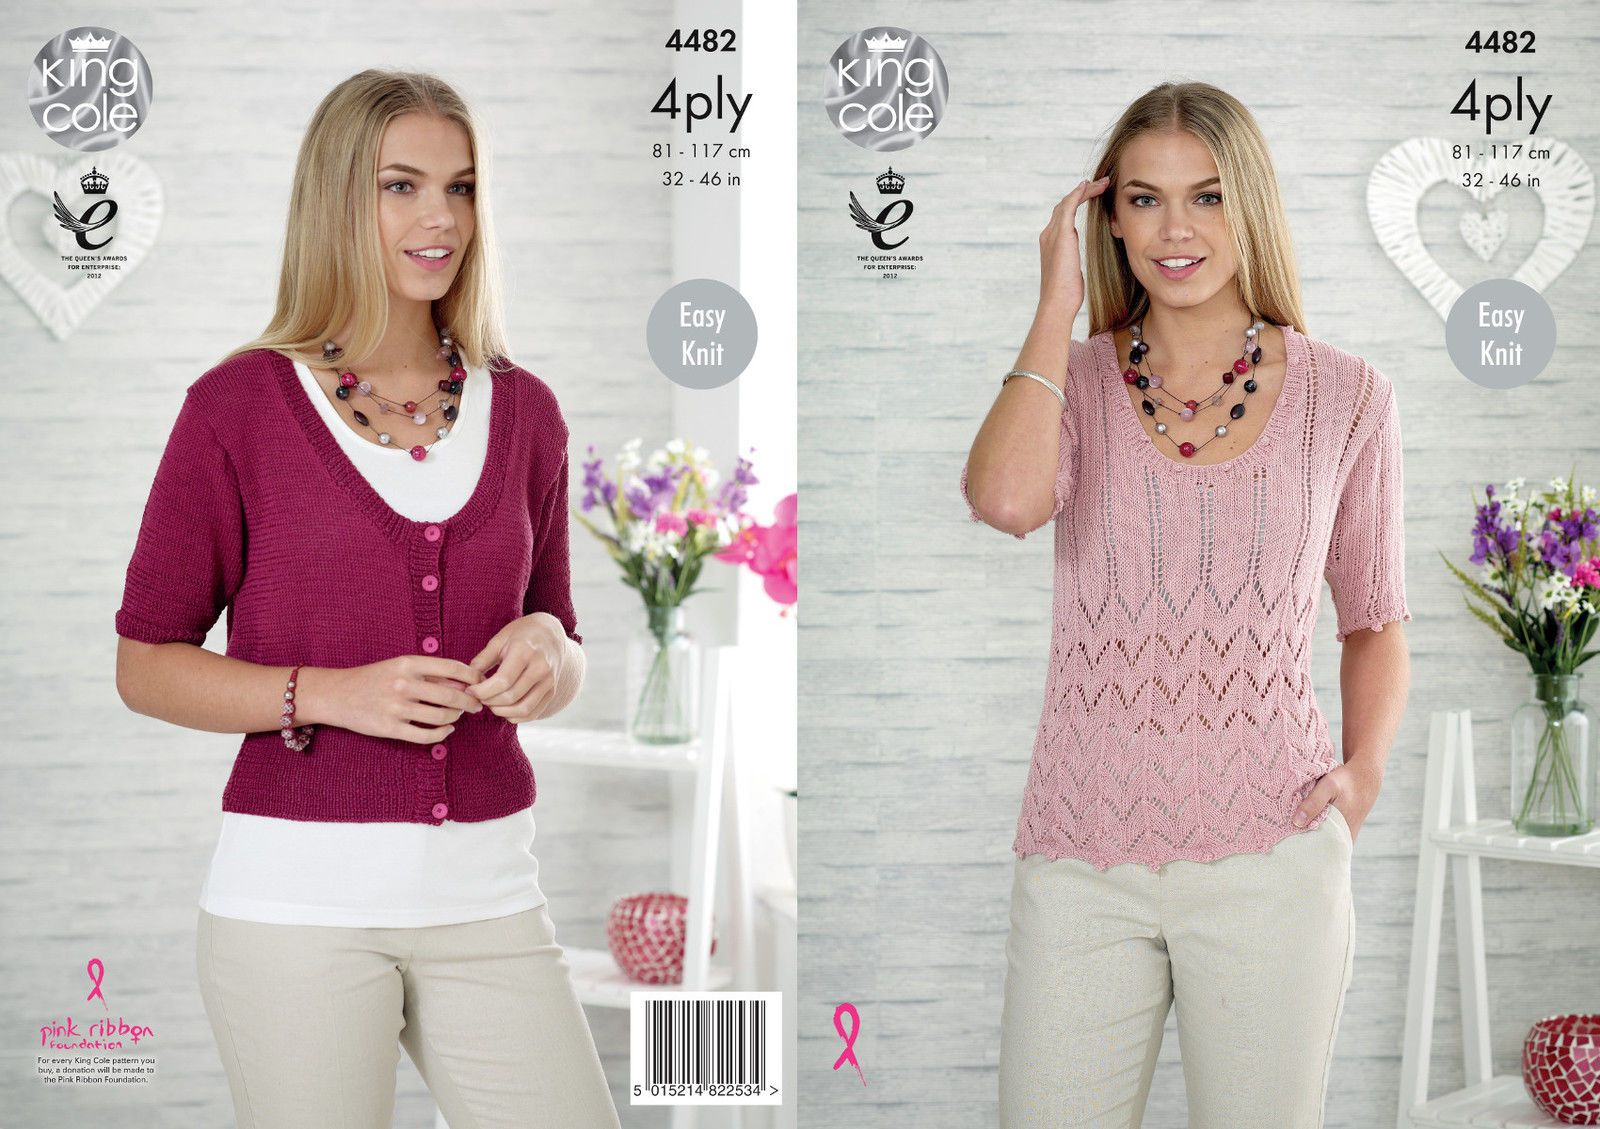 40b17a1dc £3.89 GBP - King Cole Womens 4 Ply Knitting Pattern Easy Knit Ladies Lace  Top